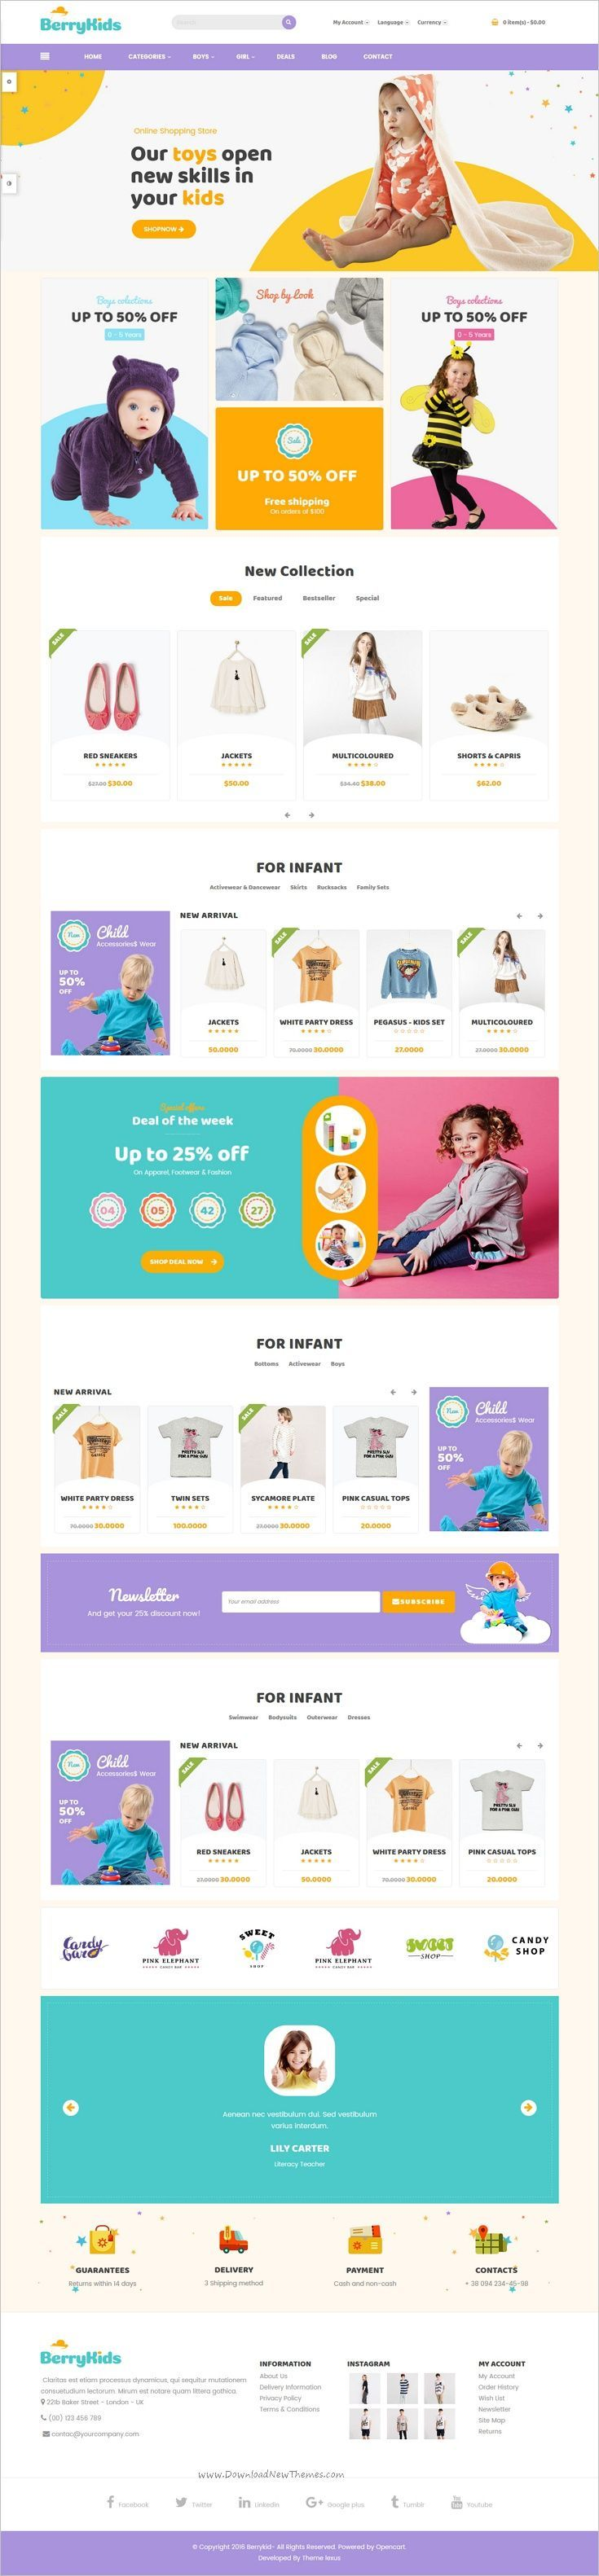 Lexus Berrykid is a creative and powerful 4in1 responsive #Opencart theme for kids, #baby #gifts #toys online #store eCommerce website with ultimate core features download now➩ https://themeforest.net/item/lexus-berrykid-kid-shop-opencart-theme/19087005?ref=Datasata